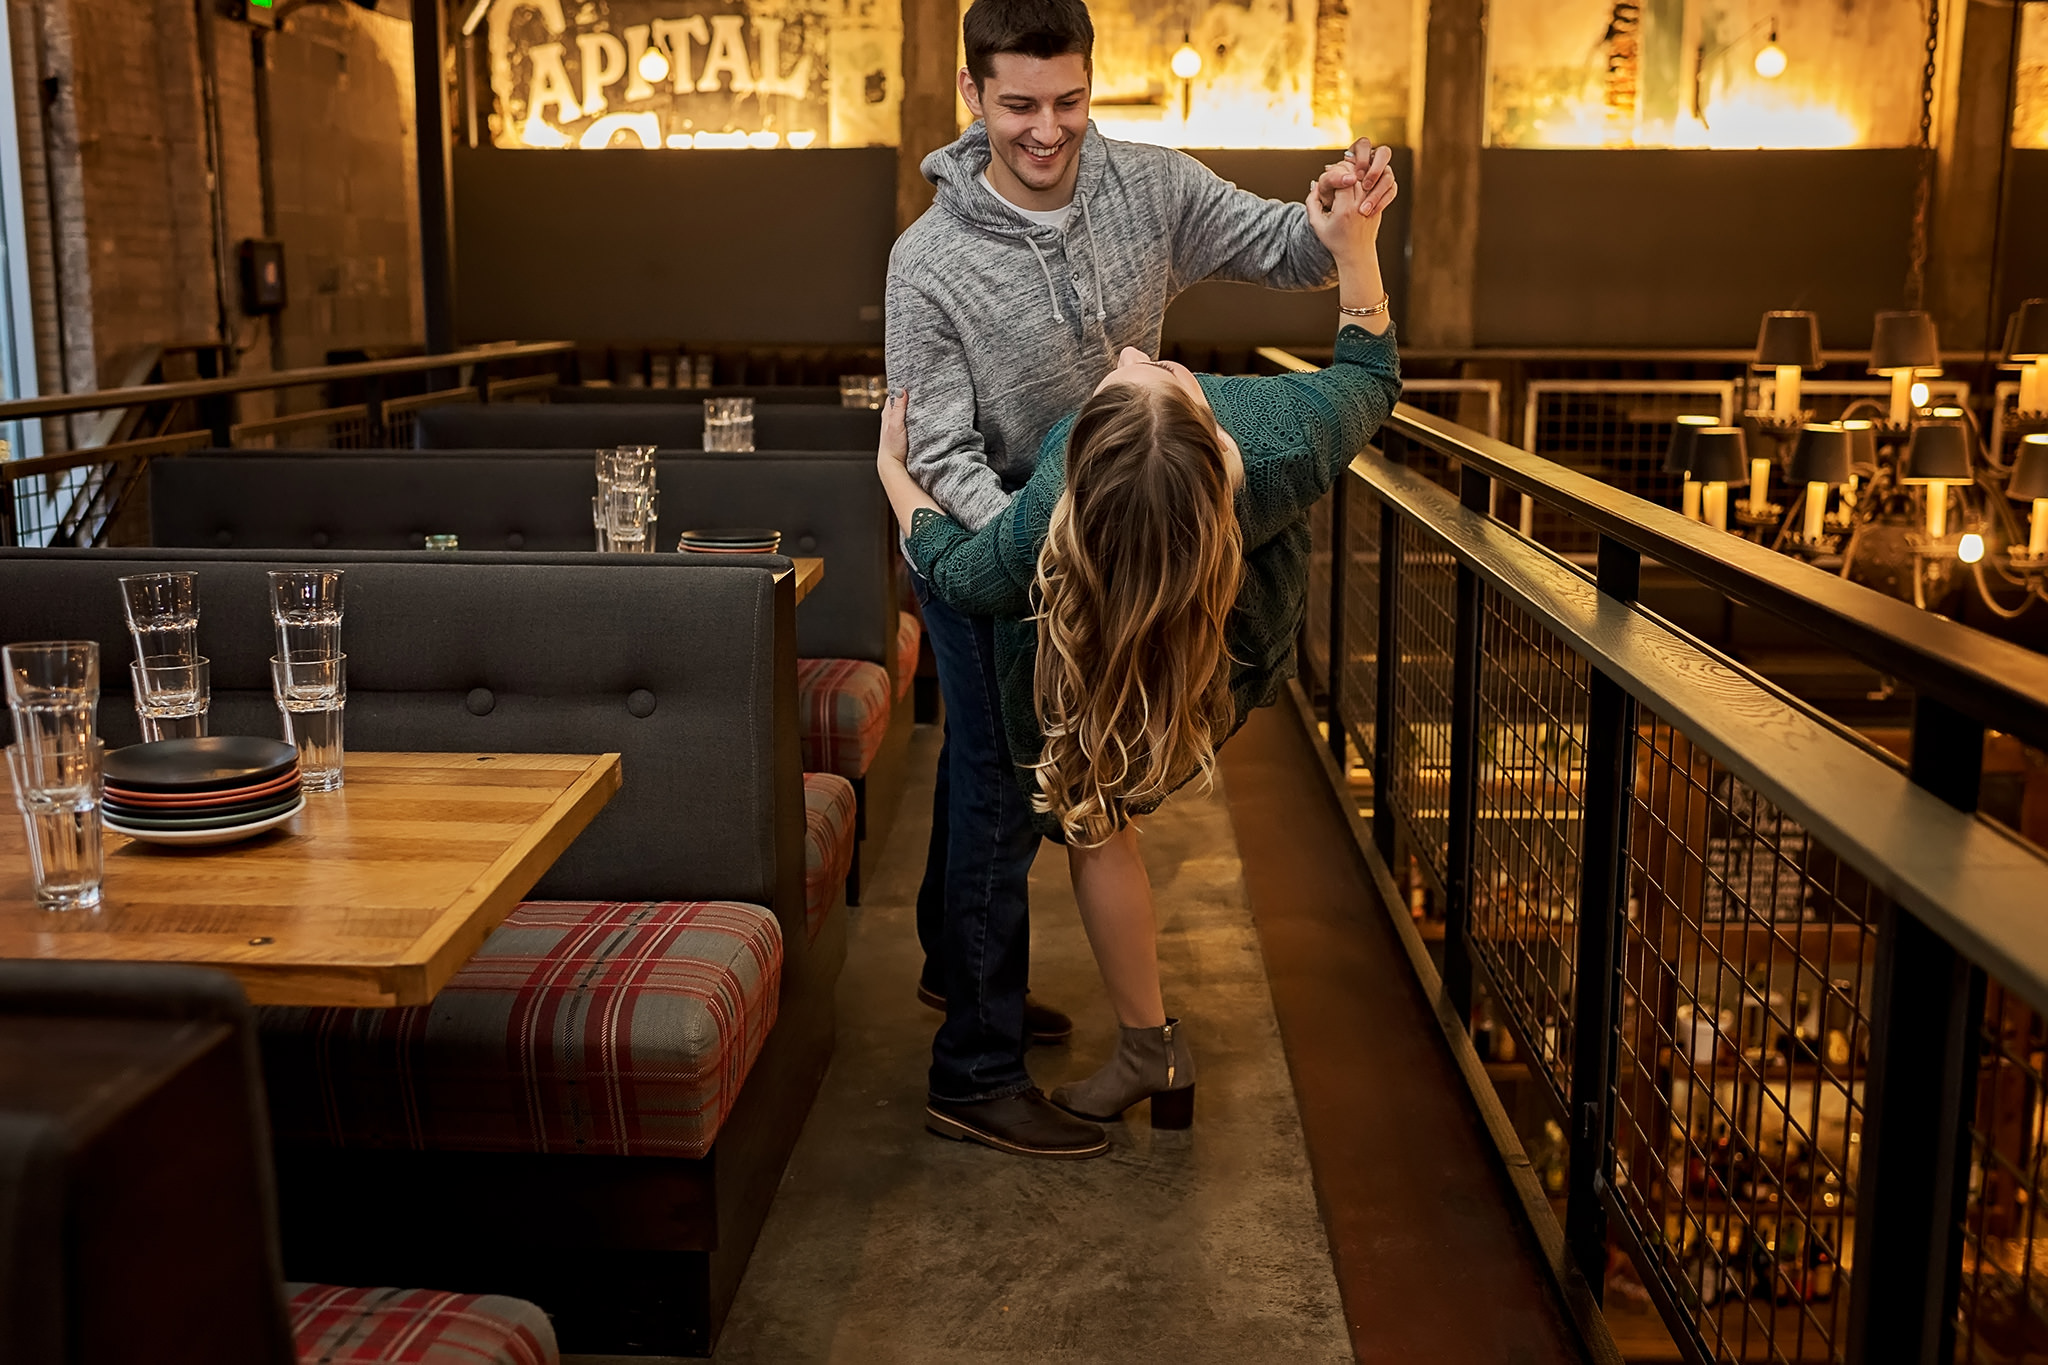 Man dips his fiance while dancing at Lucille